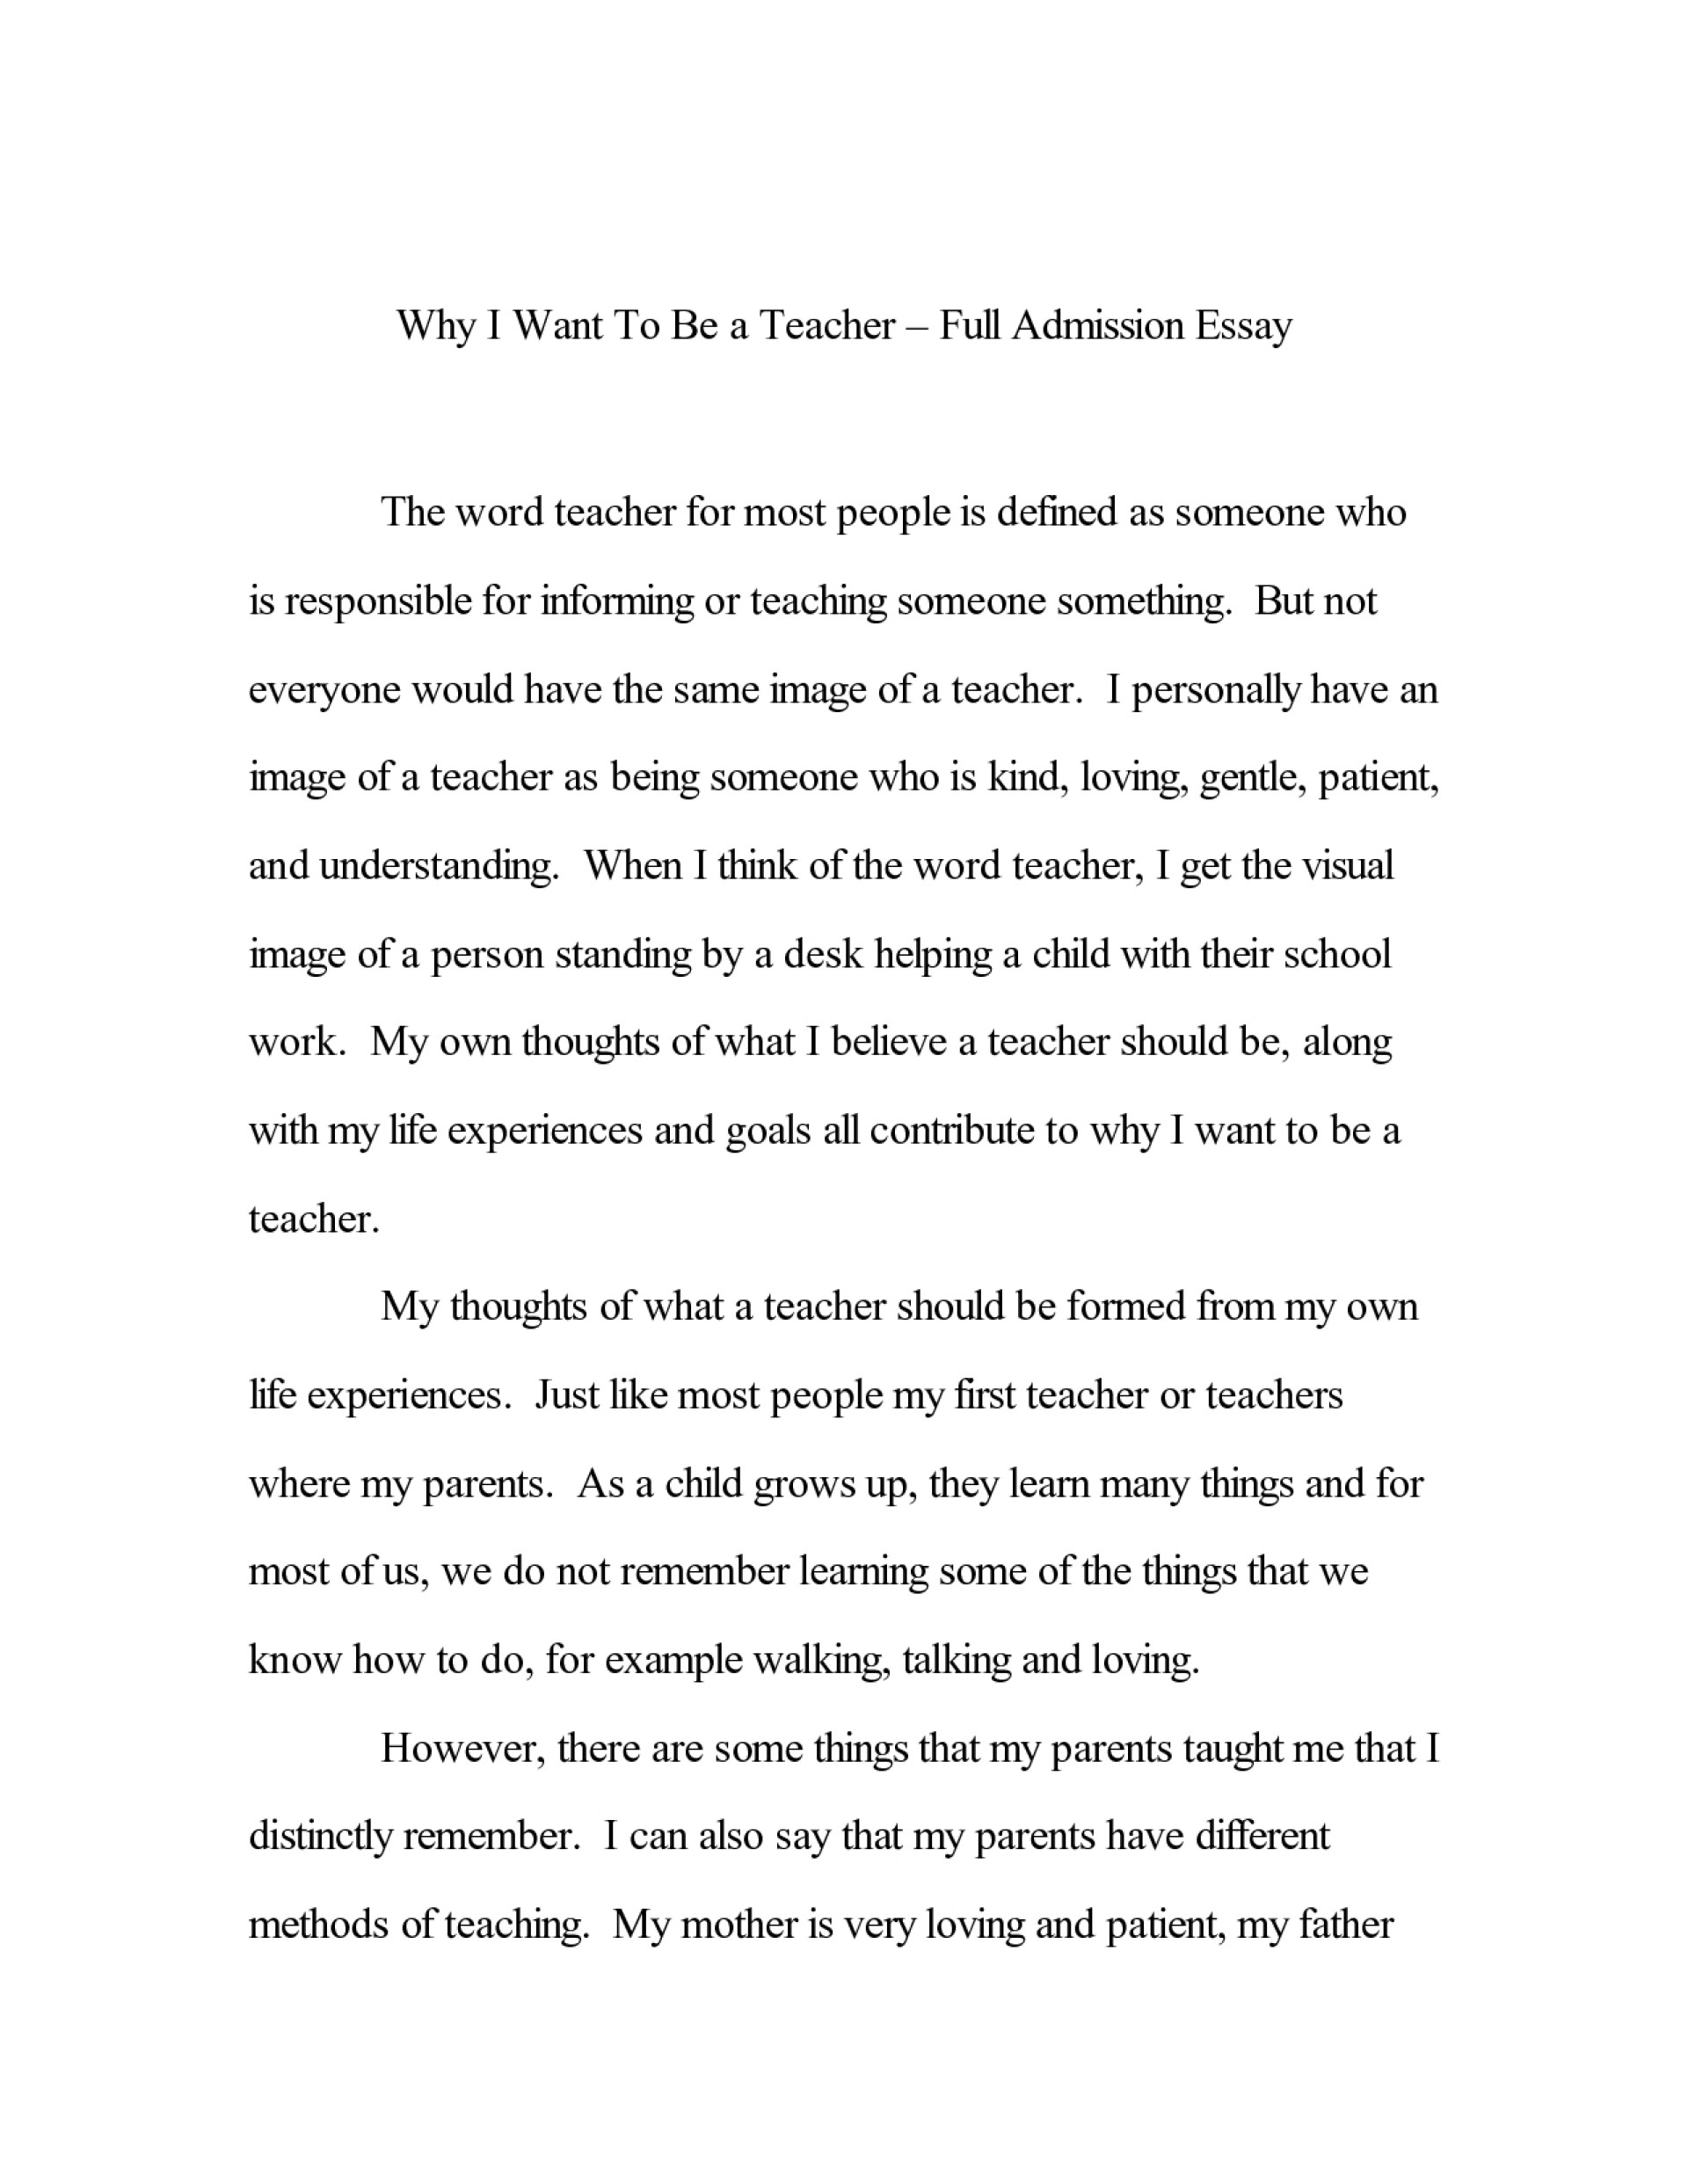 003 College App Essays Breathtaking Essay Examples Sample Application About Yourself 500 Words 1920